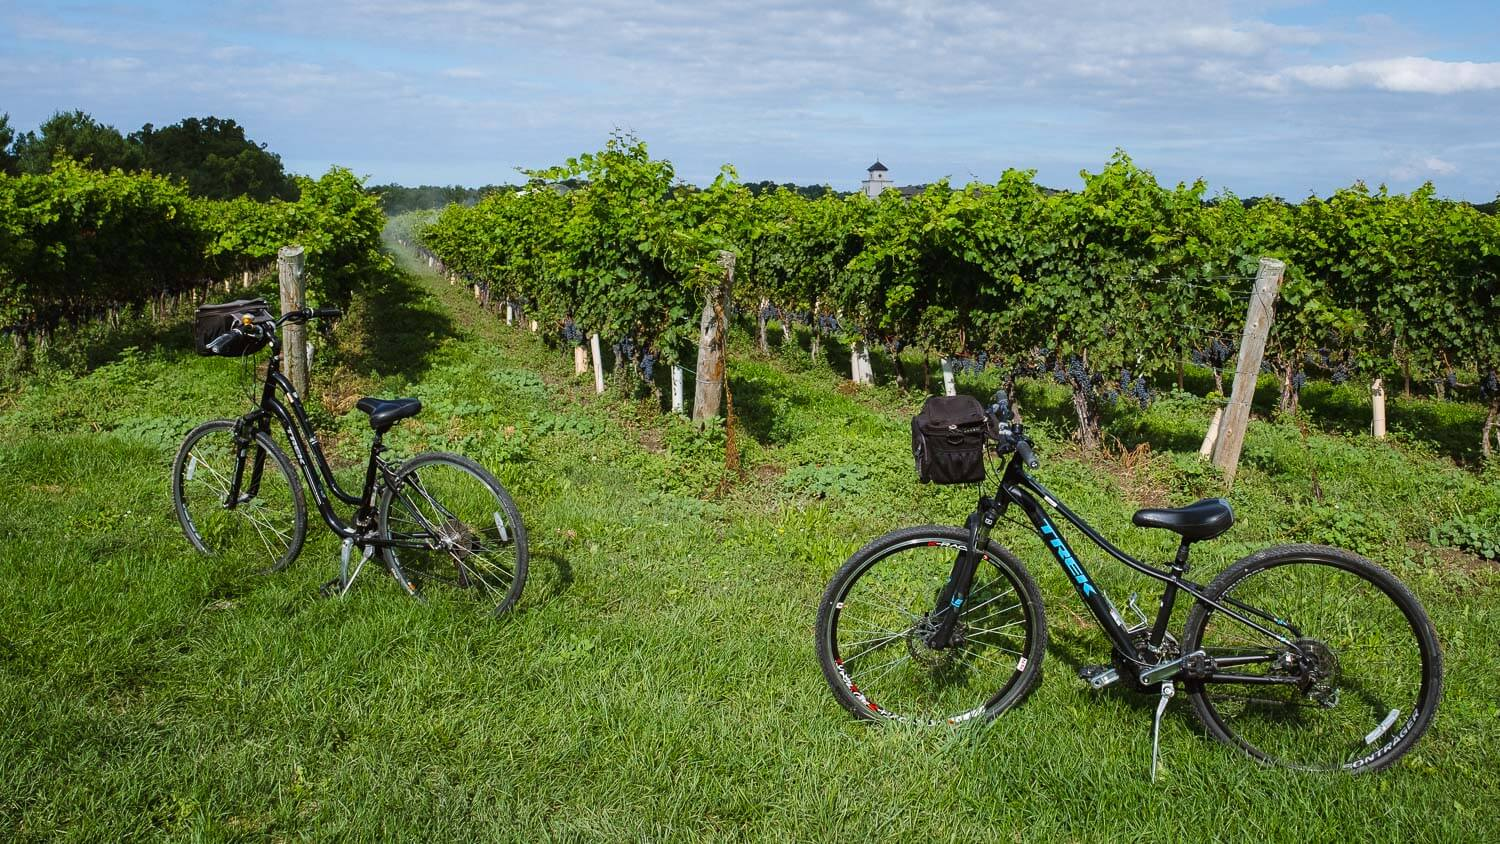 Biking through the vineyards